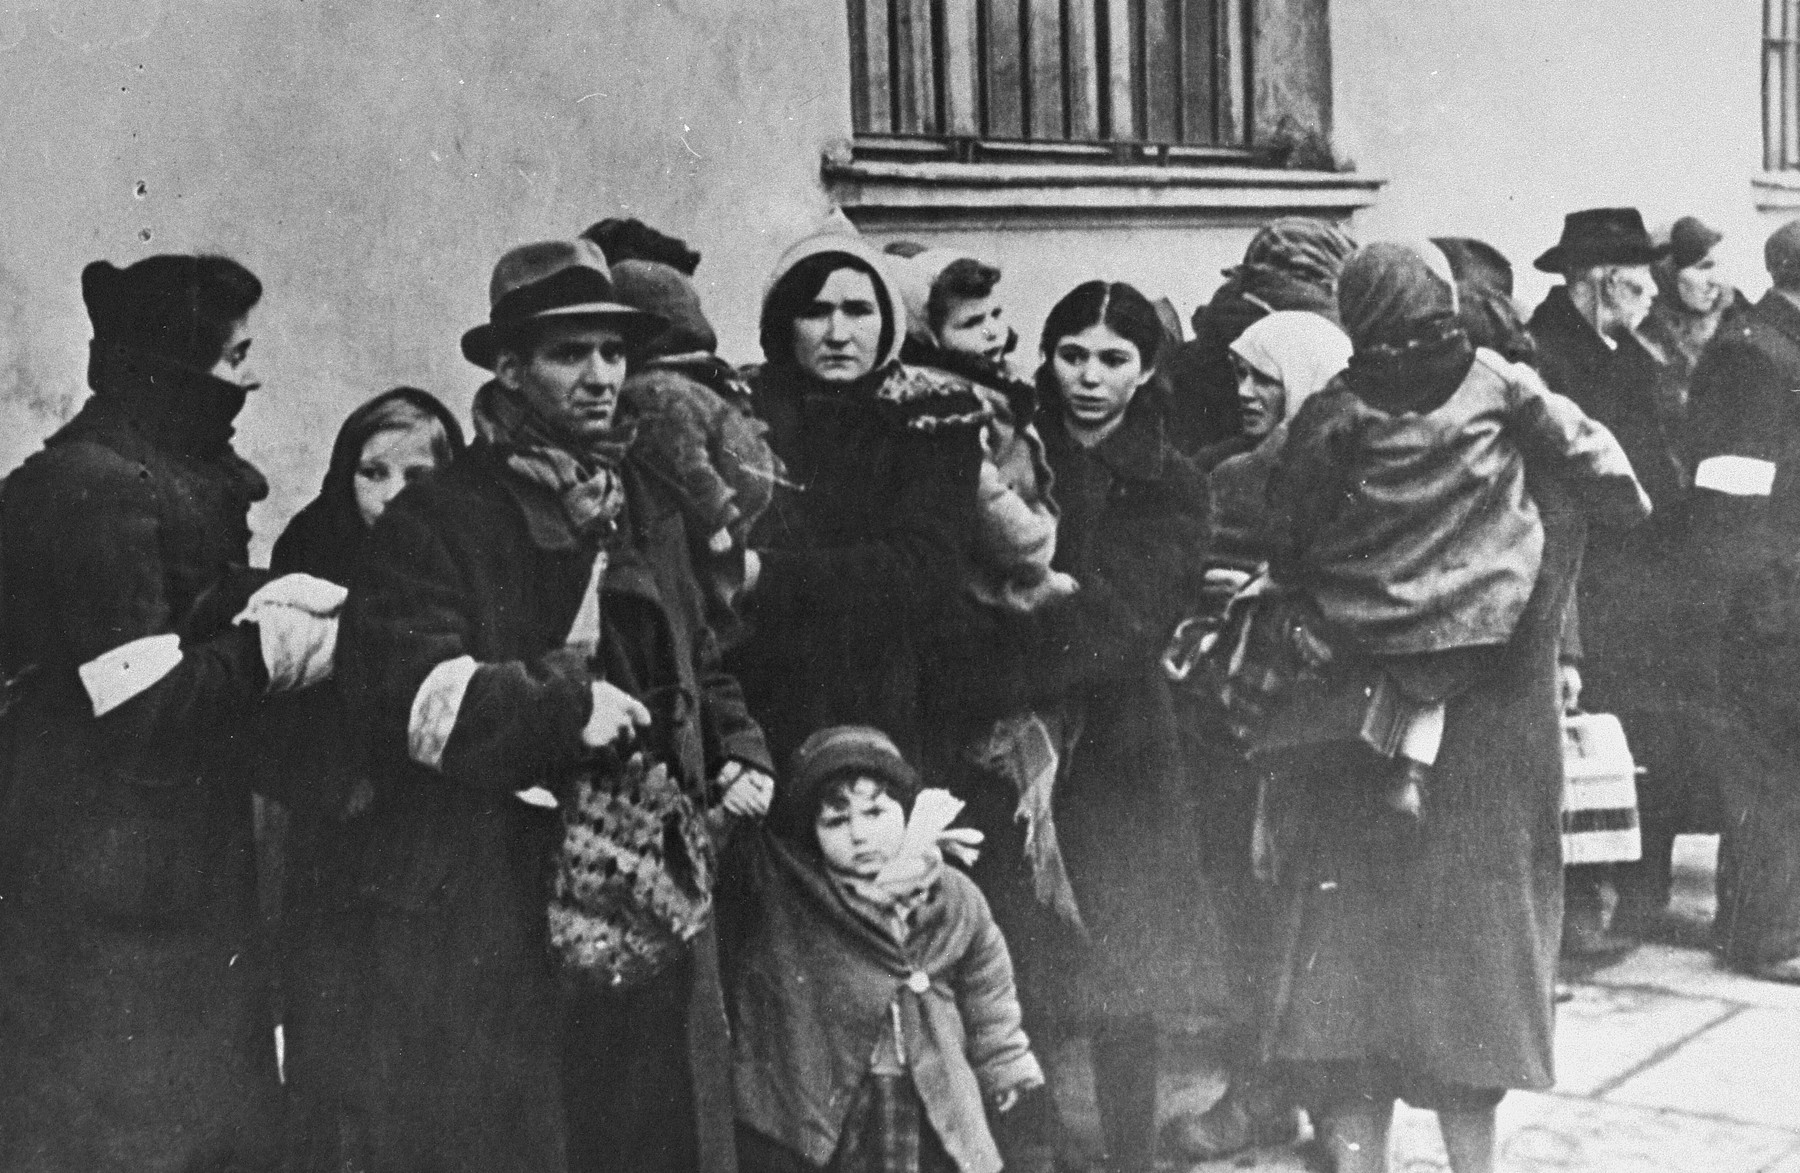 Photograph: Jews from the Krakow ghetto are assembled for deportation.